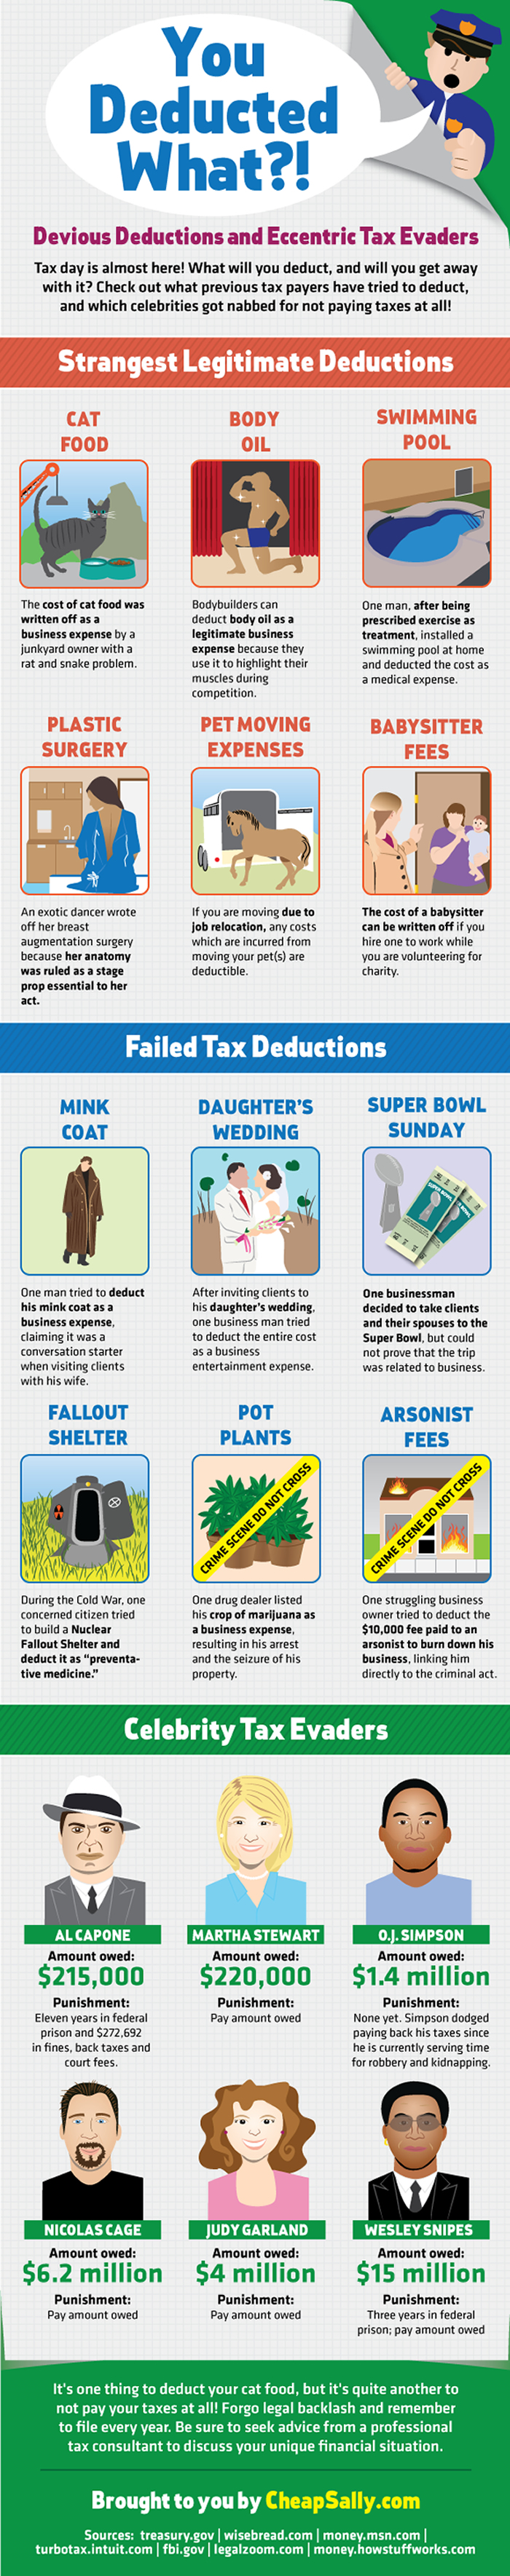 Craziest Tax Deductions #Infographic | www.TheHeavyPurse.com